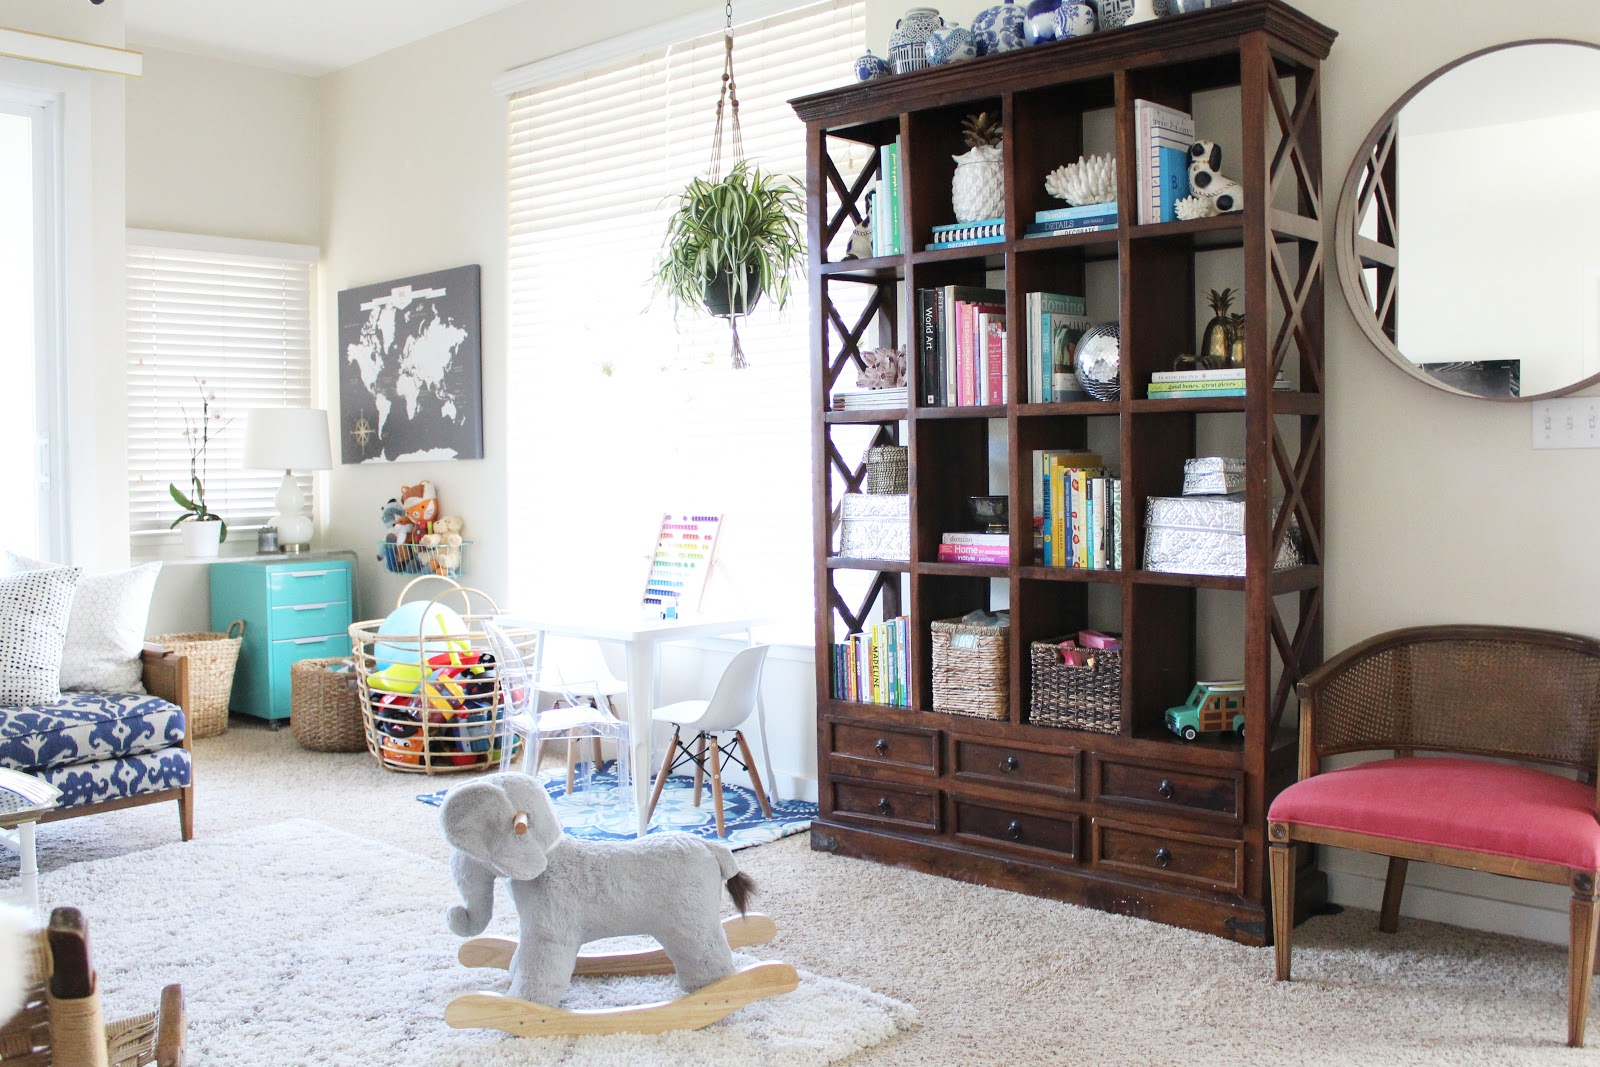 Playroom living room combination for Playroom living room combination